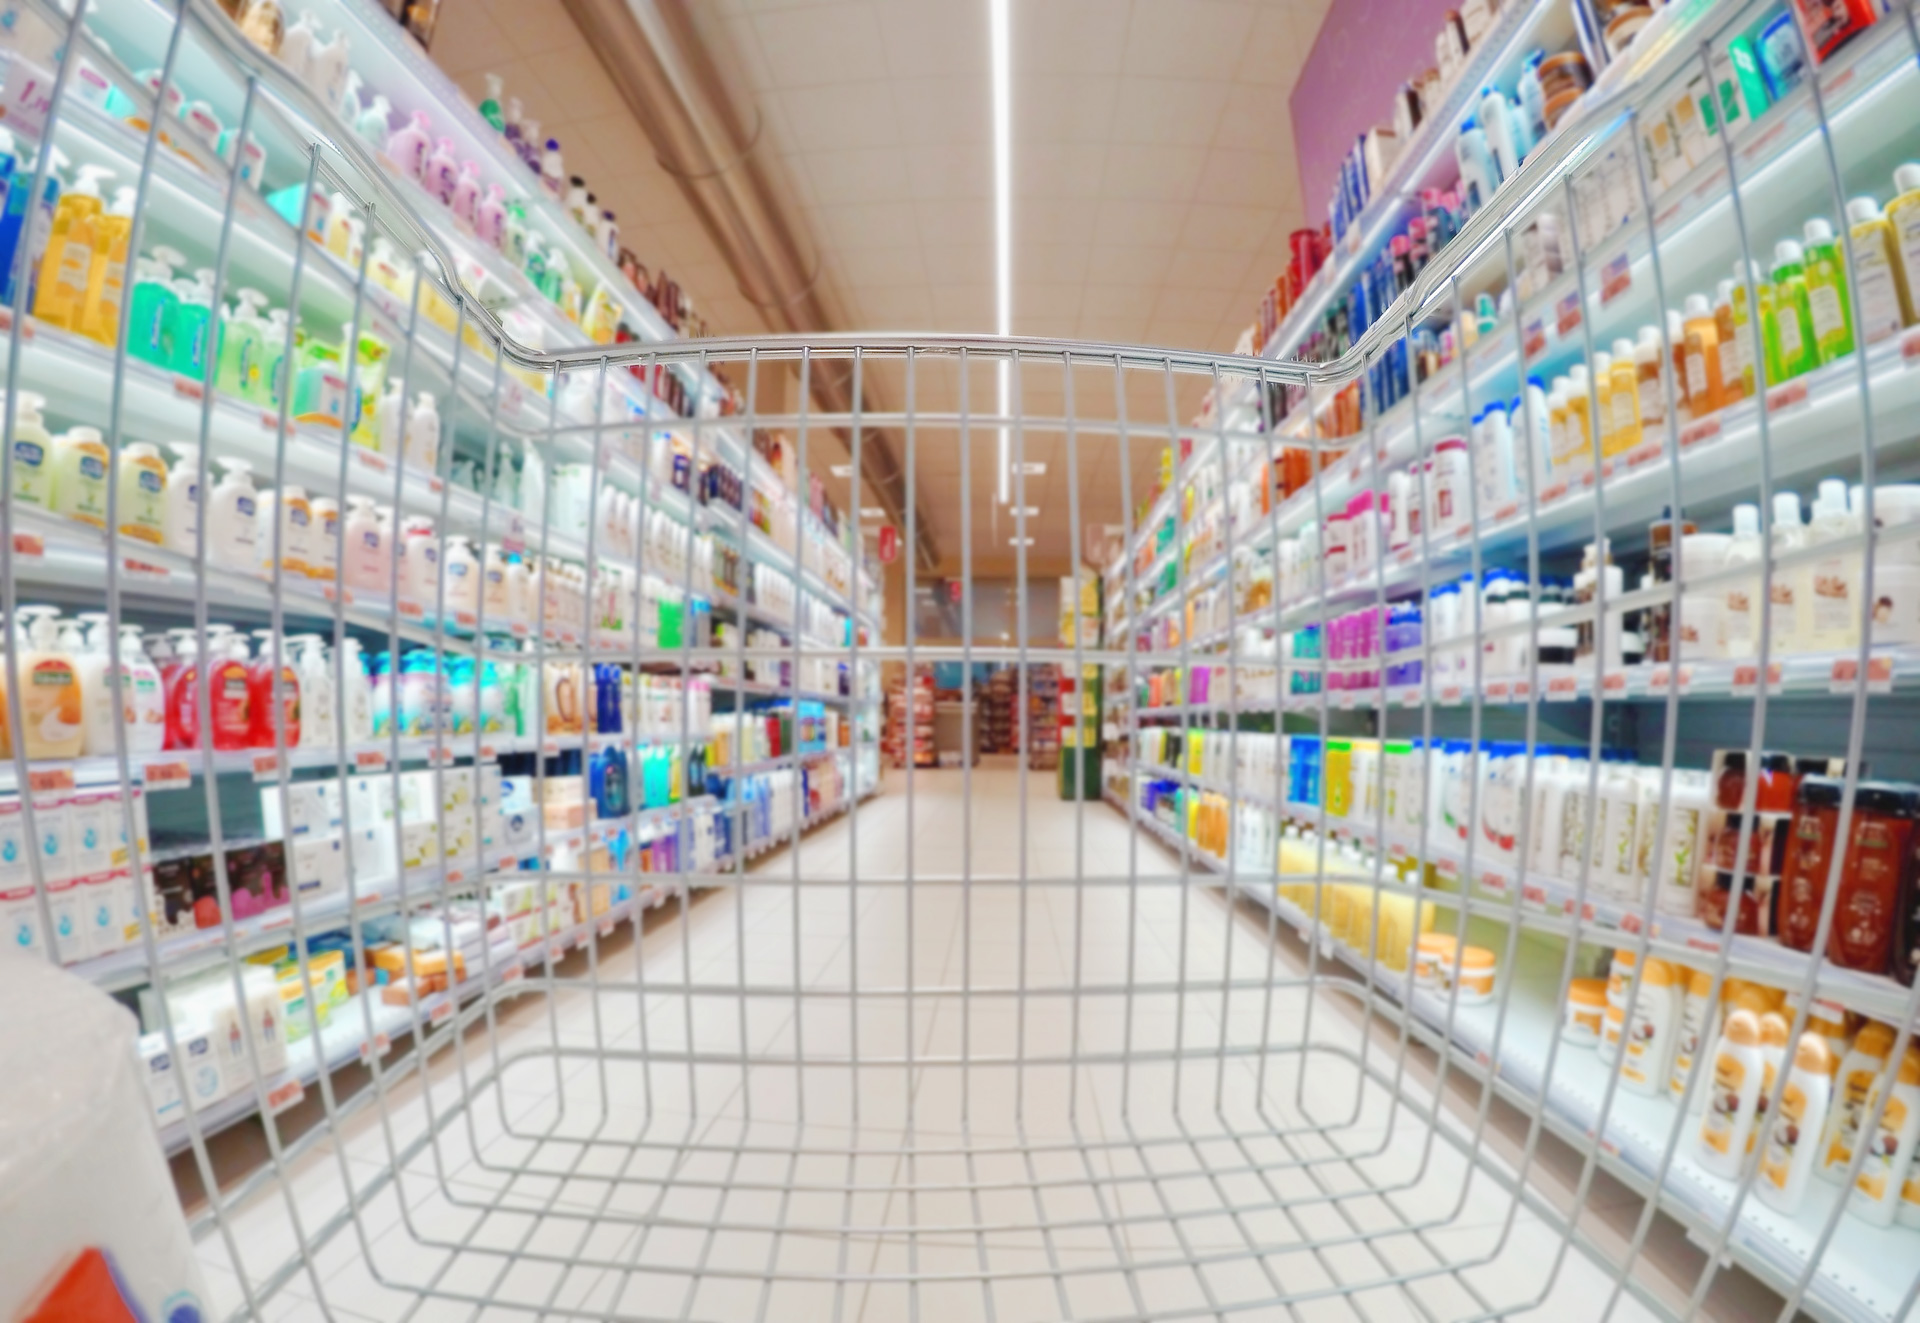 Empty shopping cart between shelves full of products